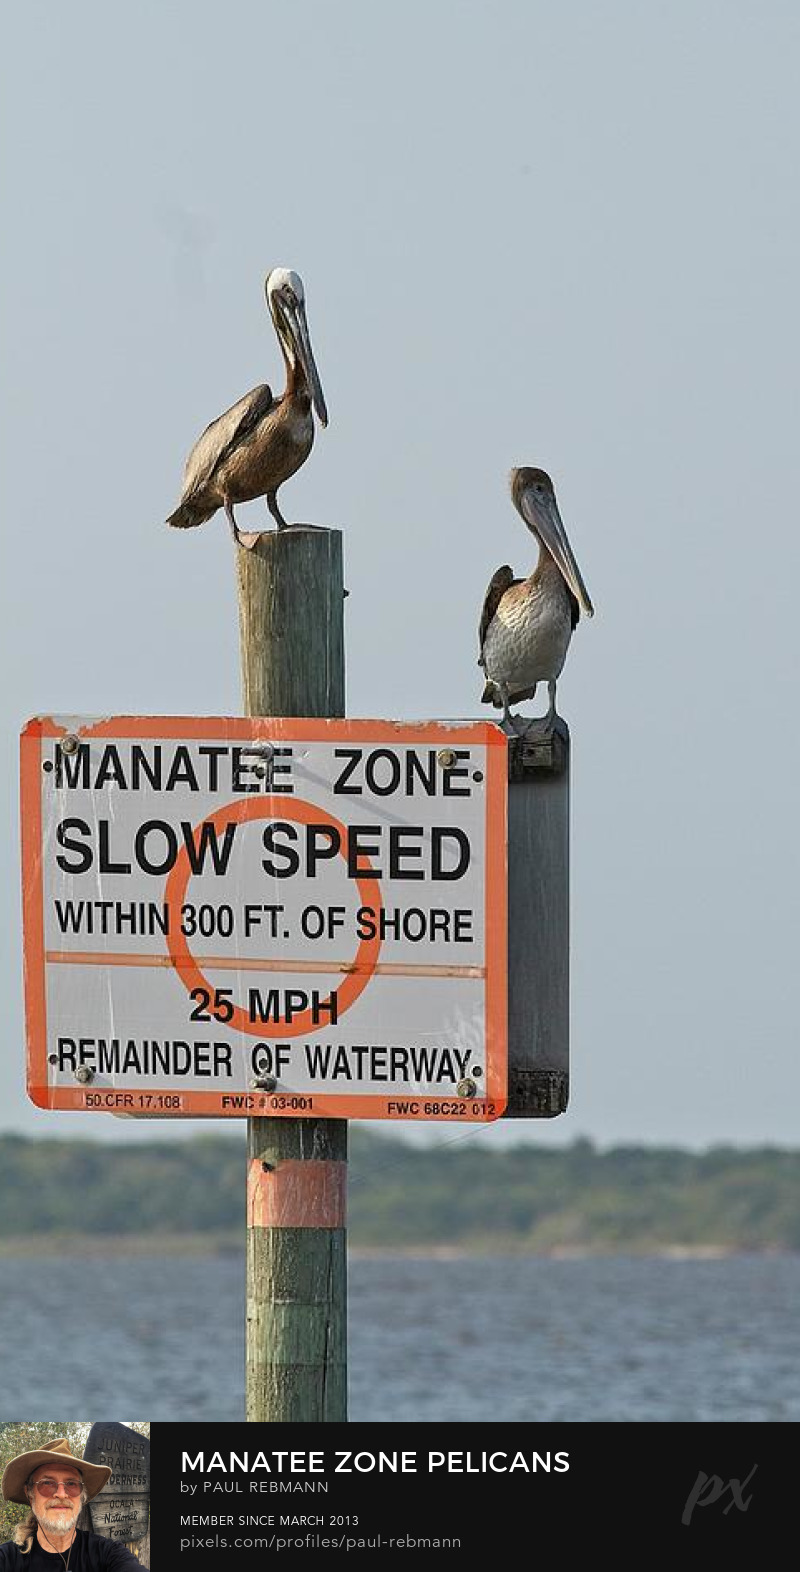 View online purchase options for Manatee Zone Pelicans by Paul Rebmann